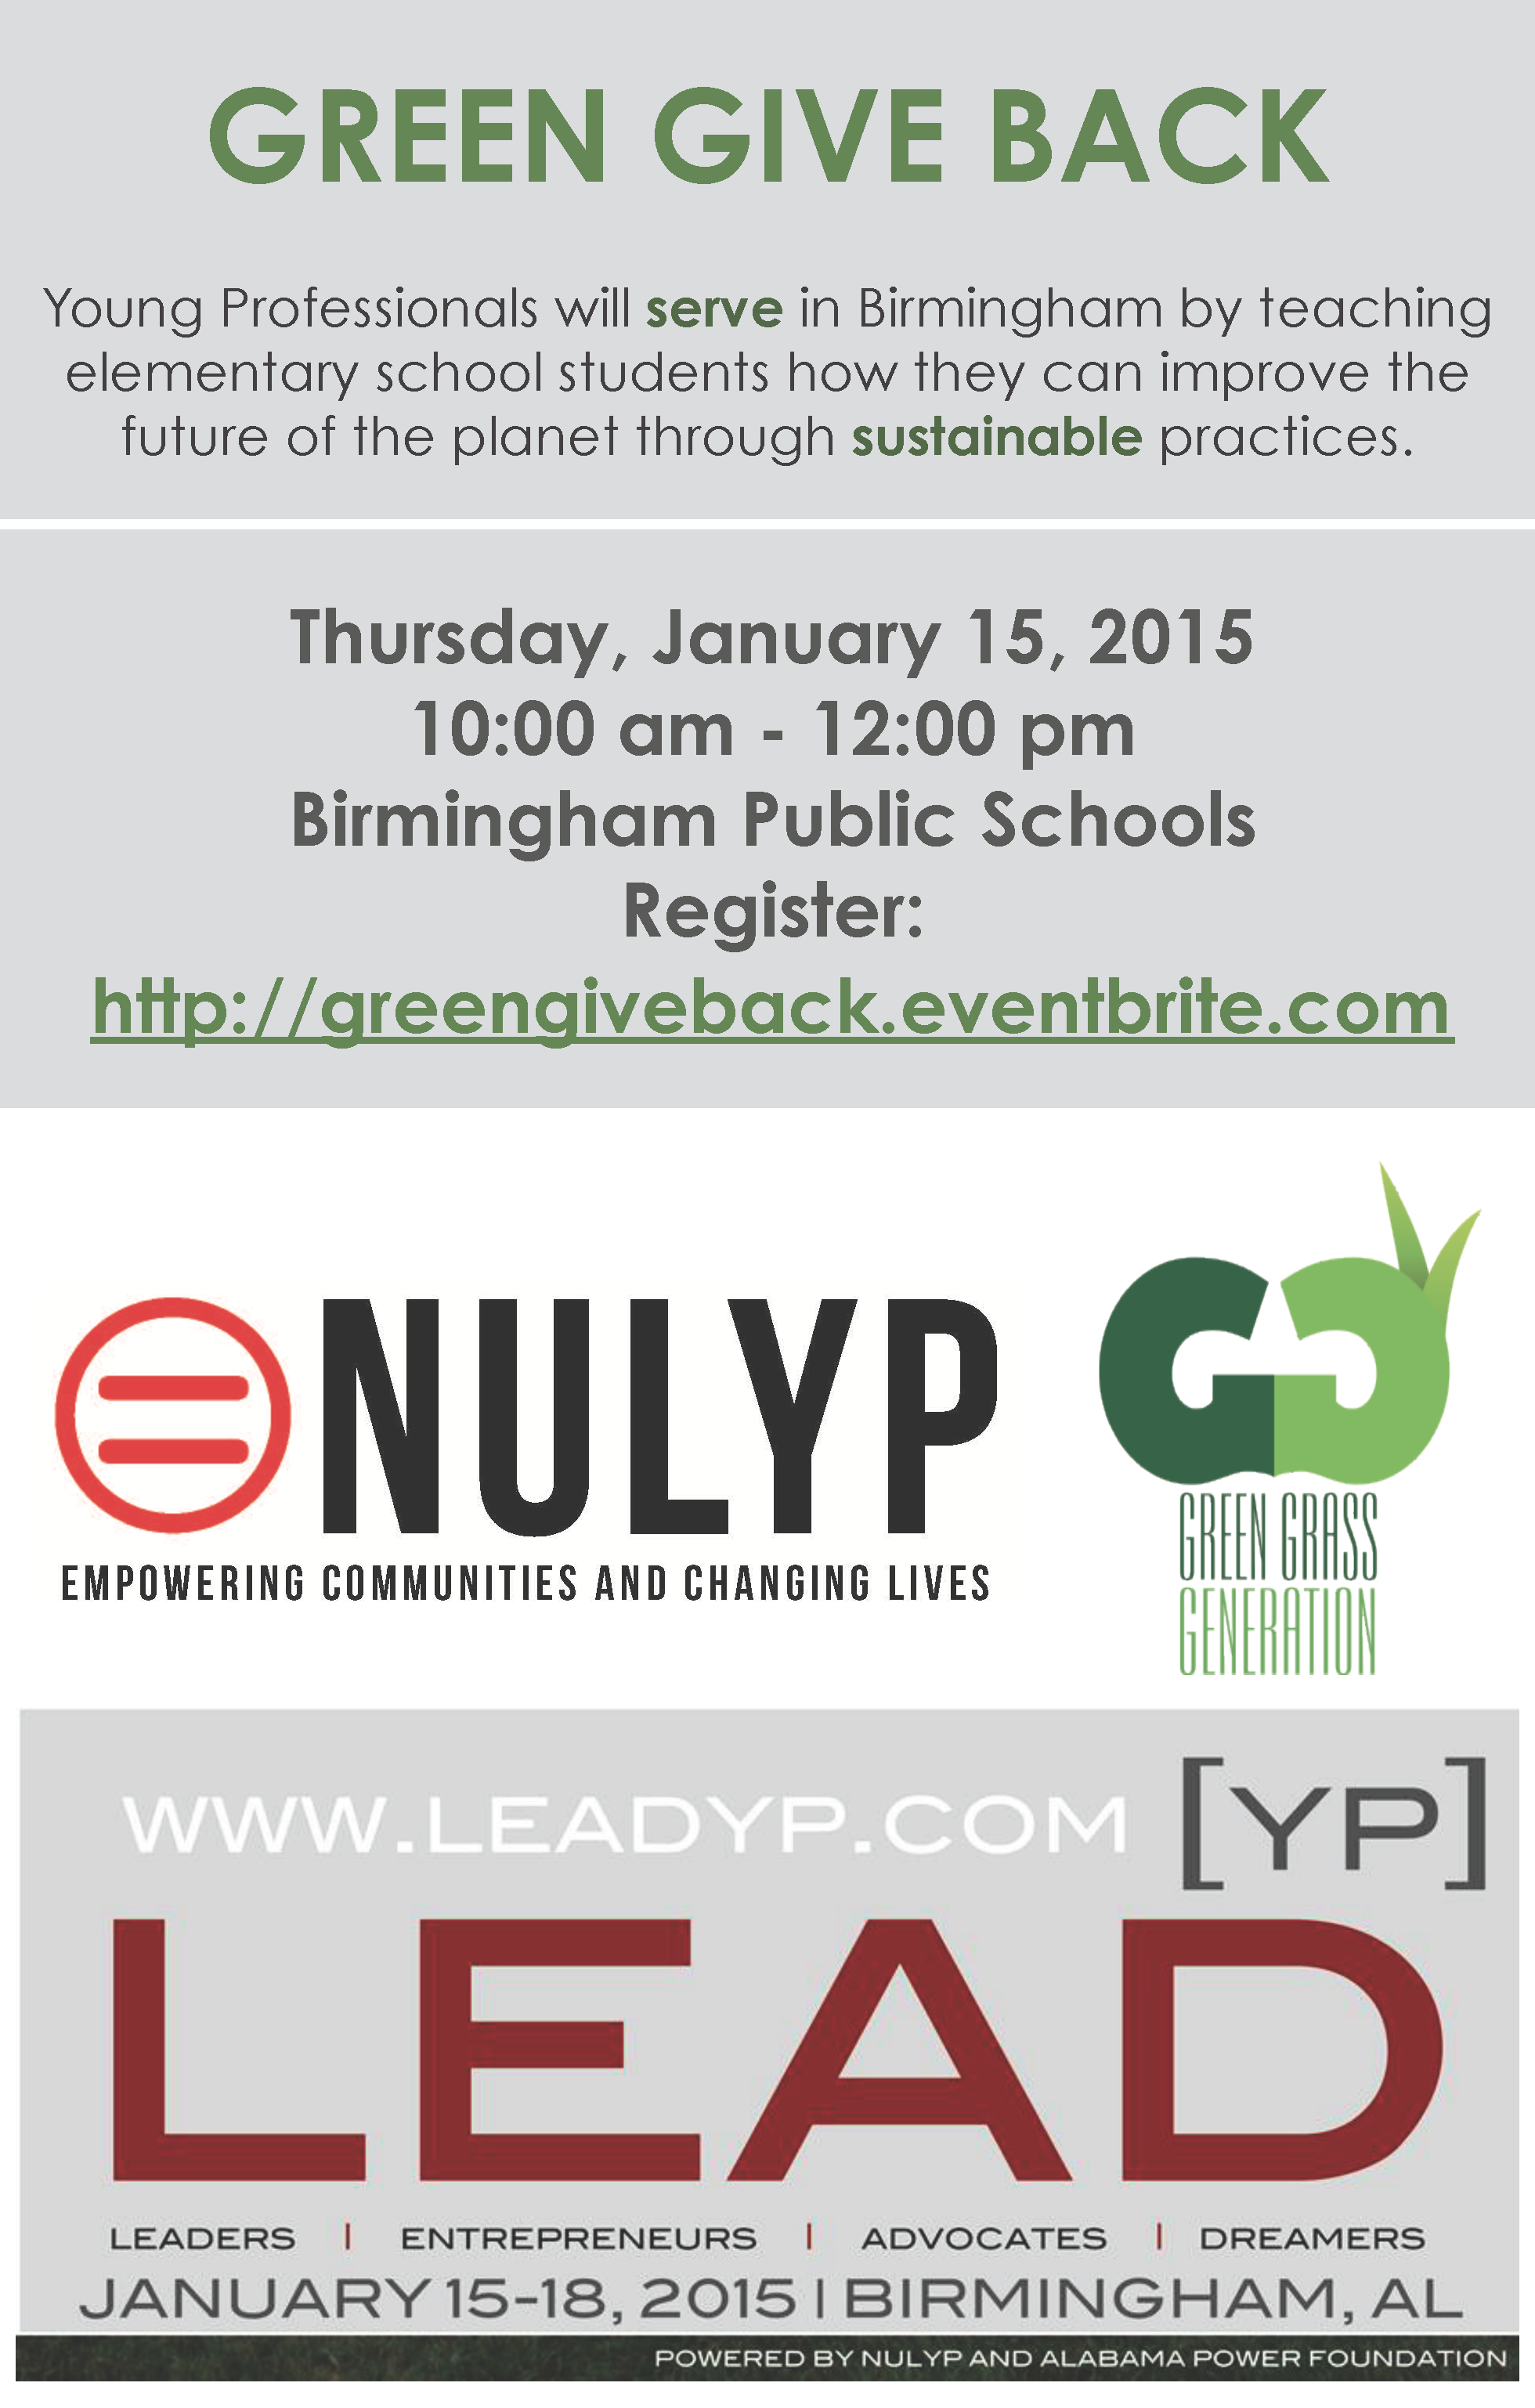 NULYP Green Give Back